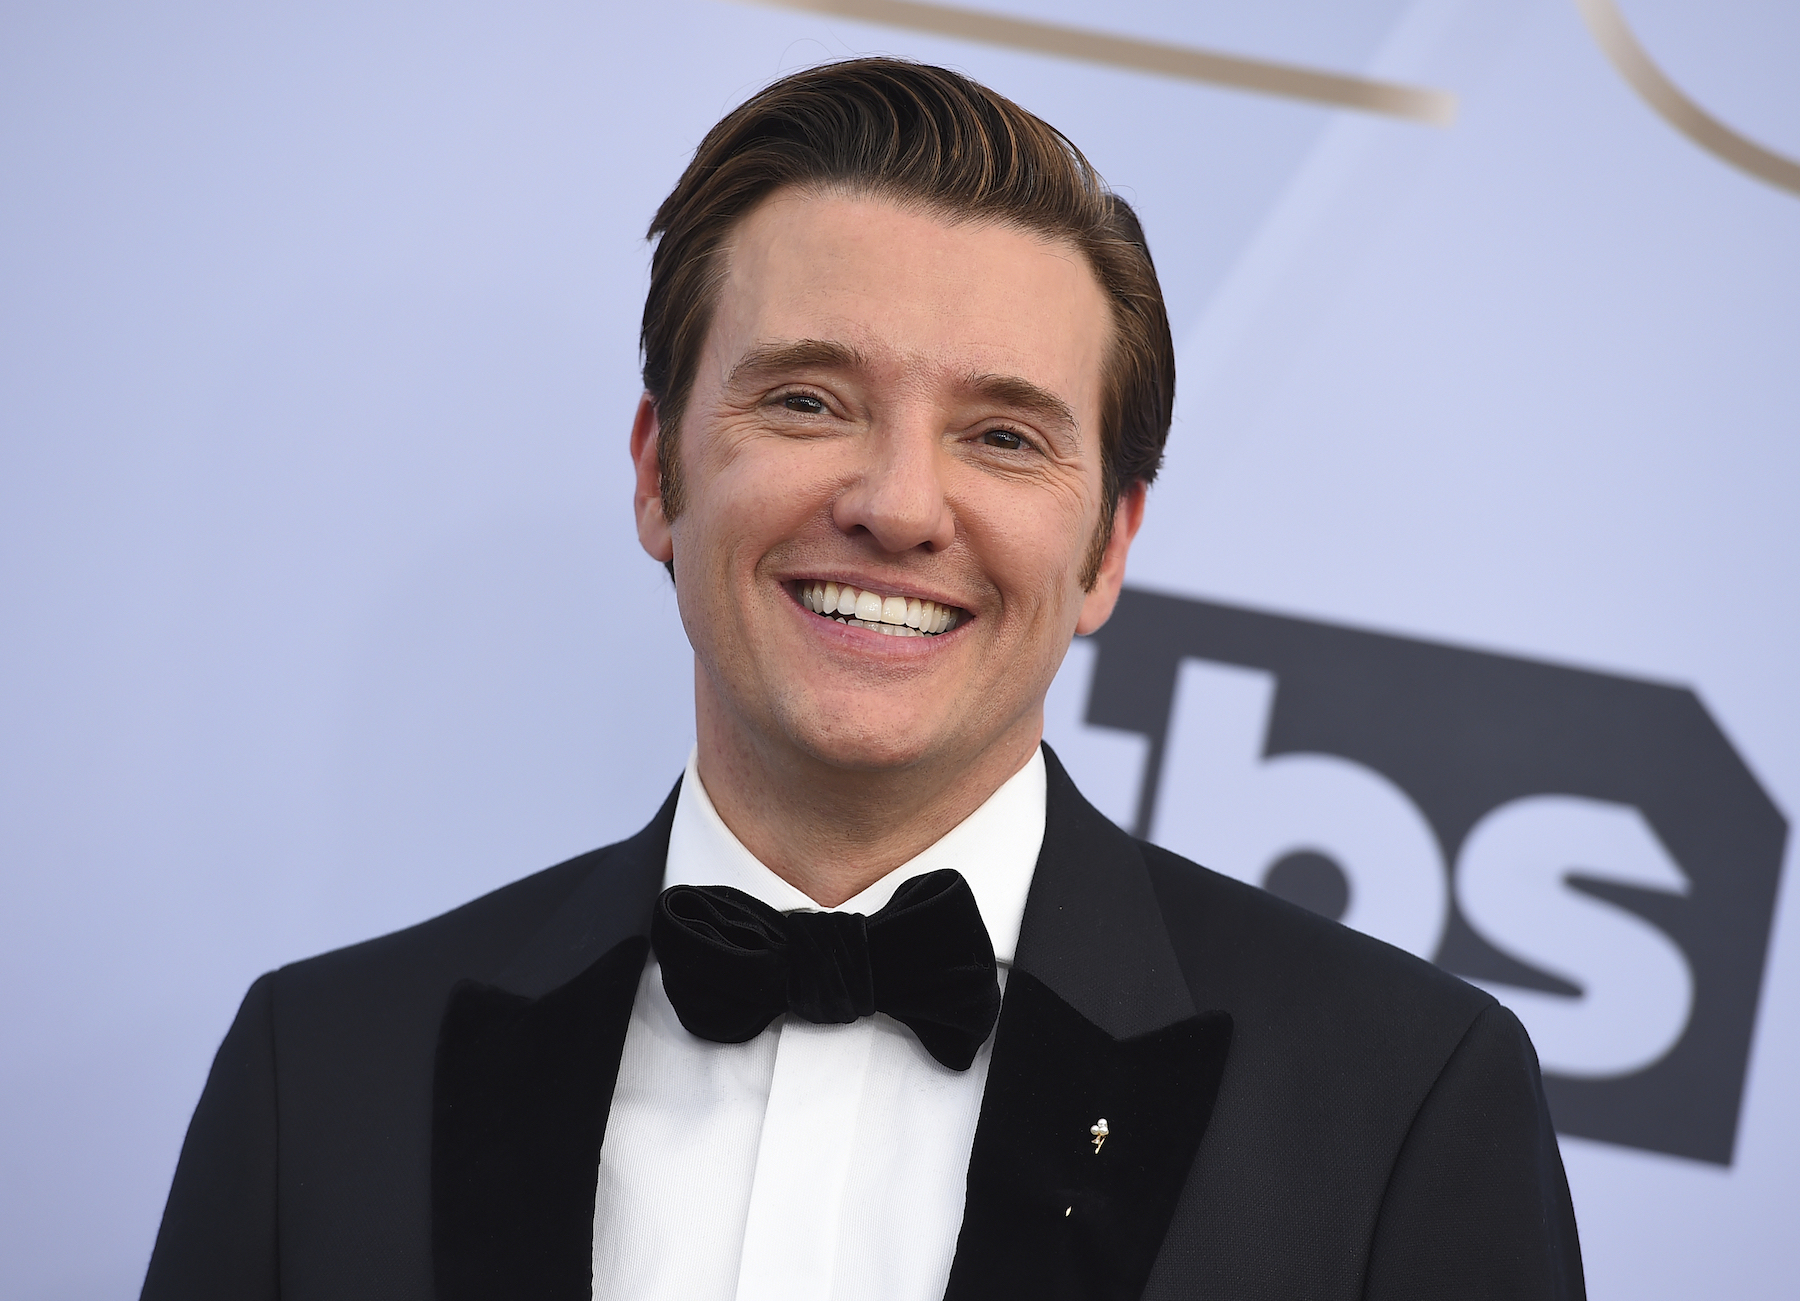 <div class='meta'><div class='origin-logo' data-origin='AP'></div><span class='caption-text' data-credit='Jordan Strauss/Invision/AP'>Jason Butler Harner arrives at the 25th annual Screen Actors Guild Awards at the Shrine Auditorium & Expo Hall on Sunday, Jan. 27, 2019, in Los Angeles.</span></div>